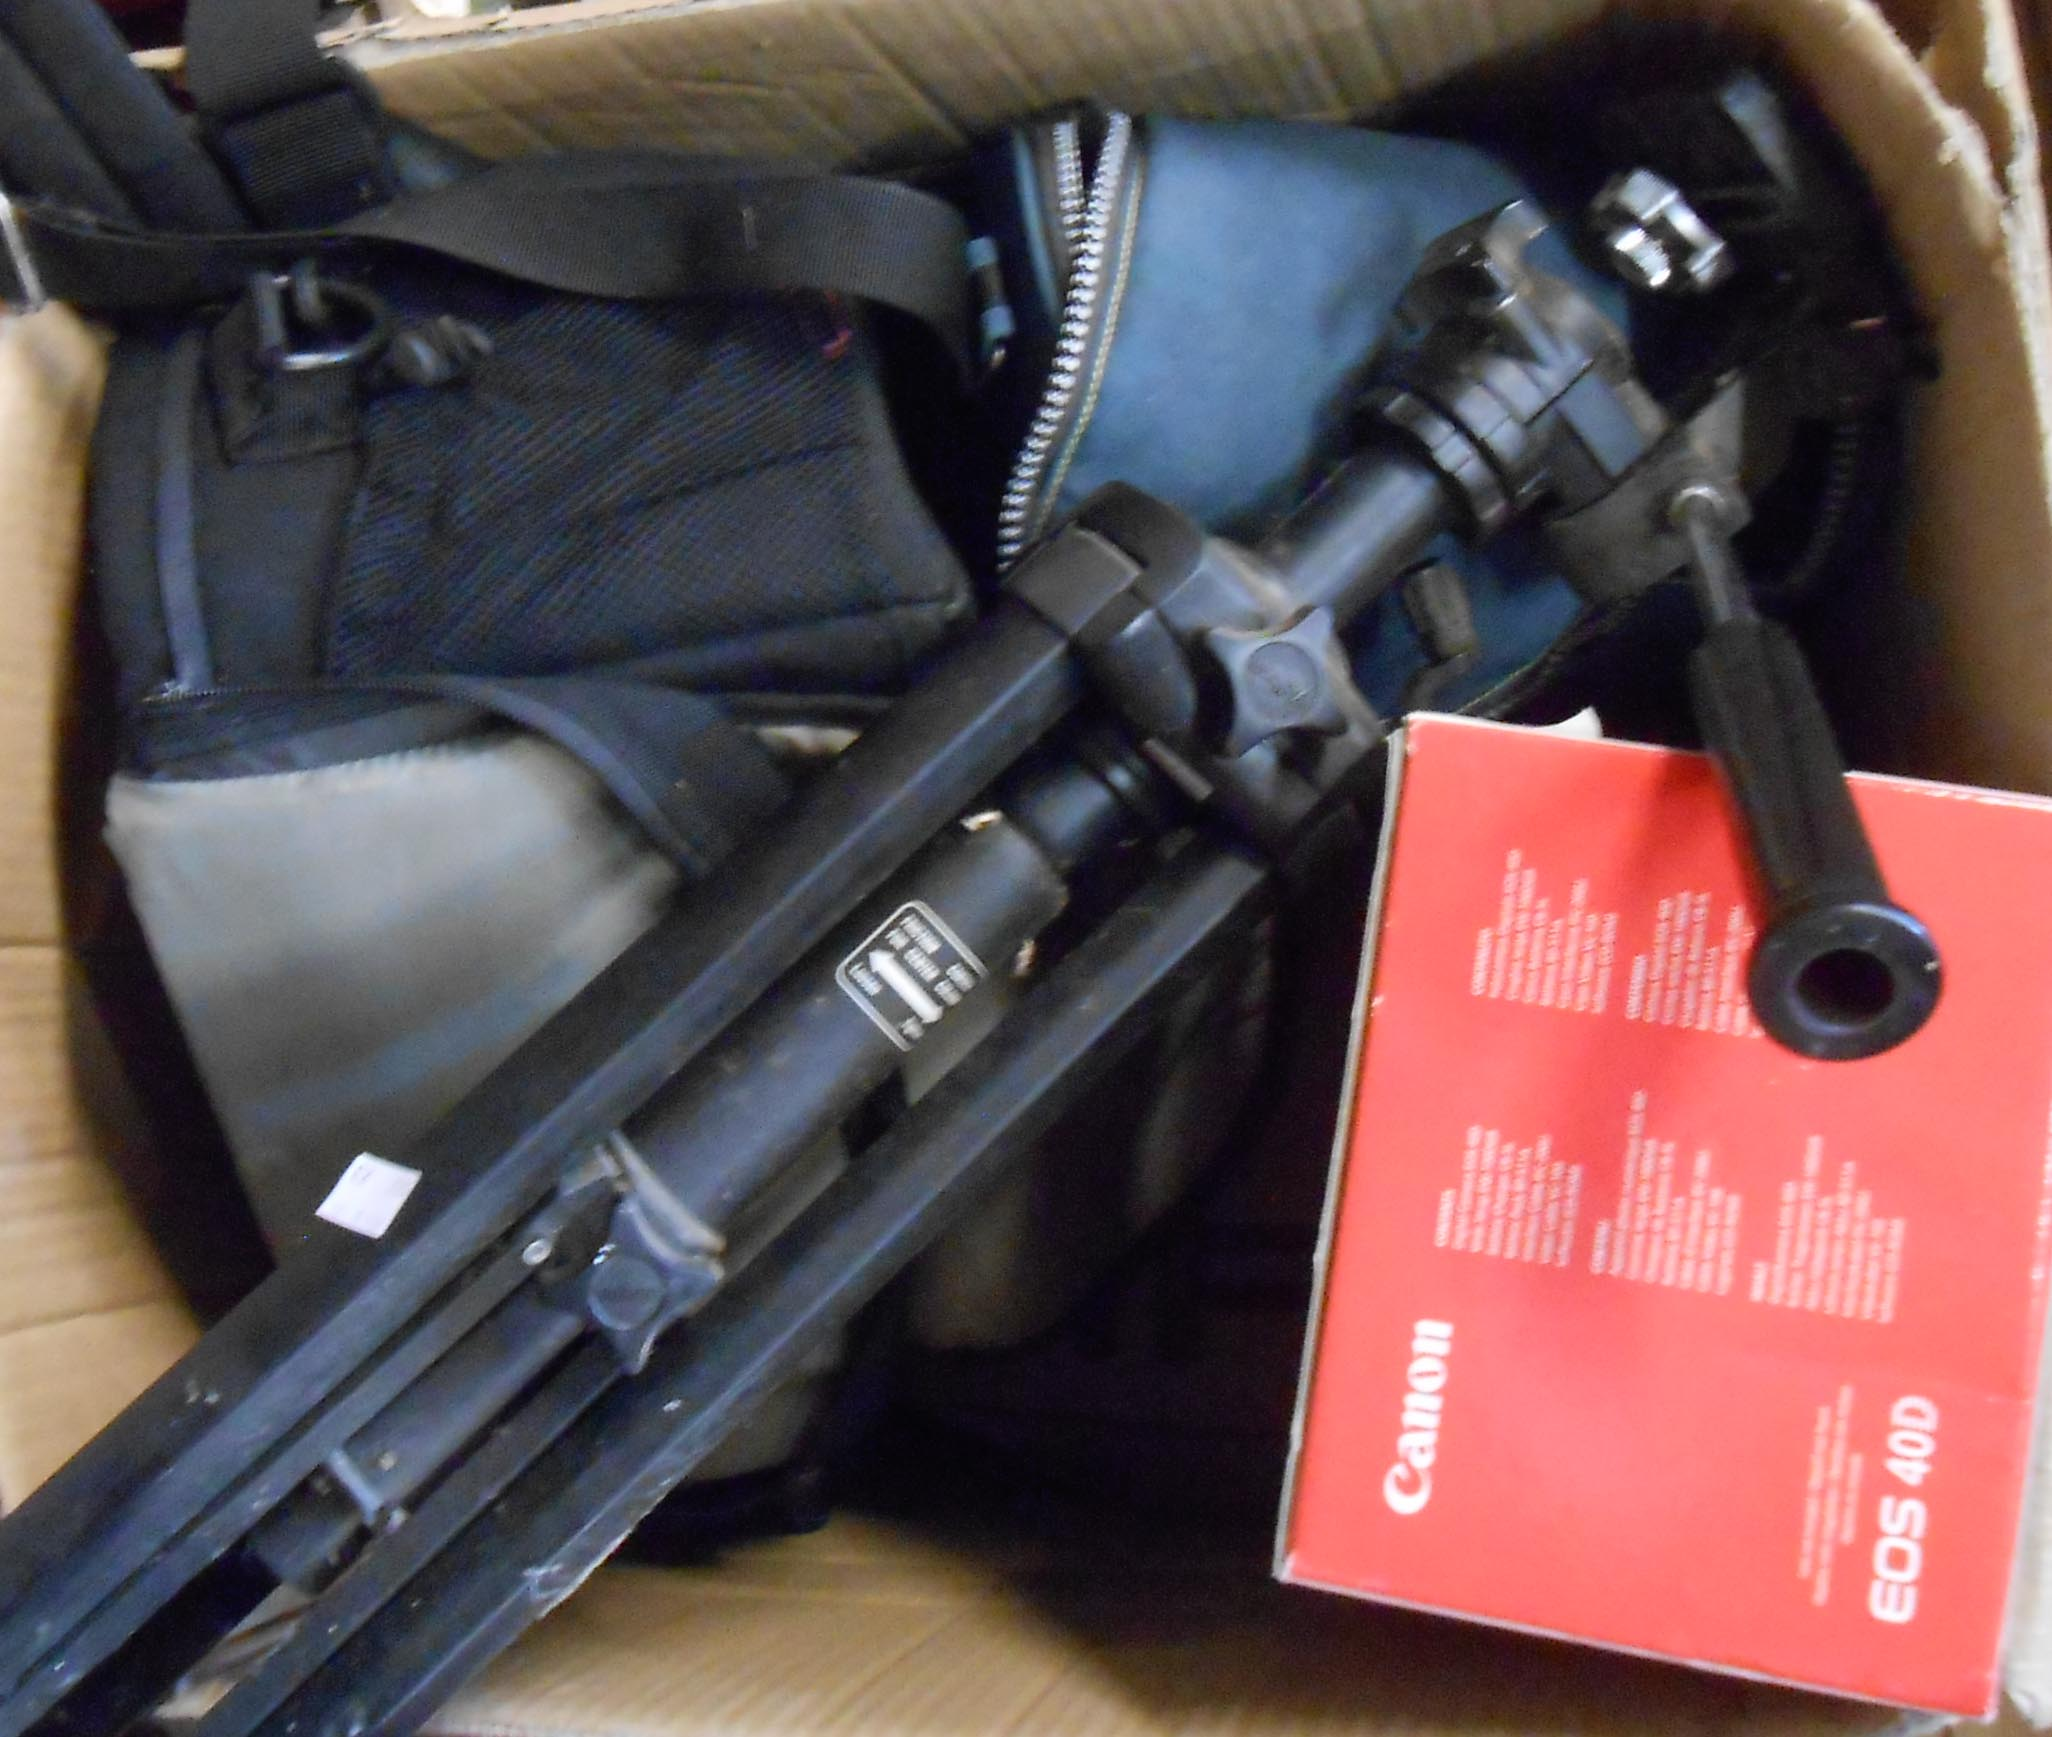 A box containing assorted cameras and equipment including Canon EOS 40D with Sigma 200mm lens, a